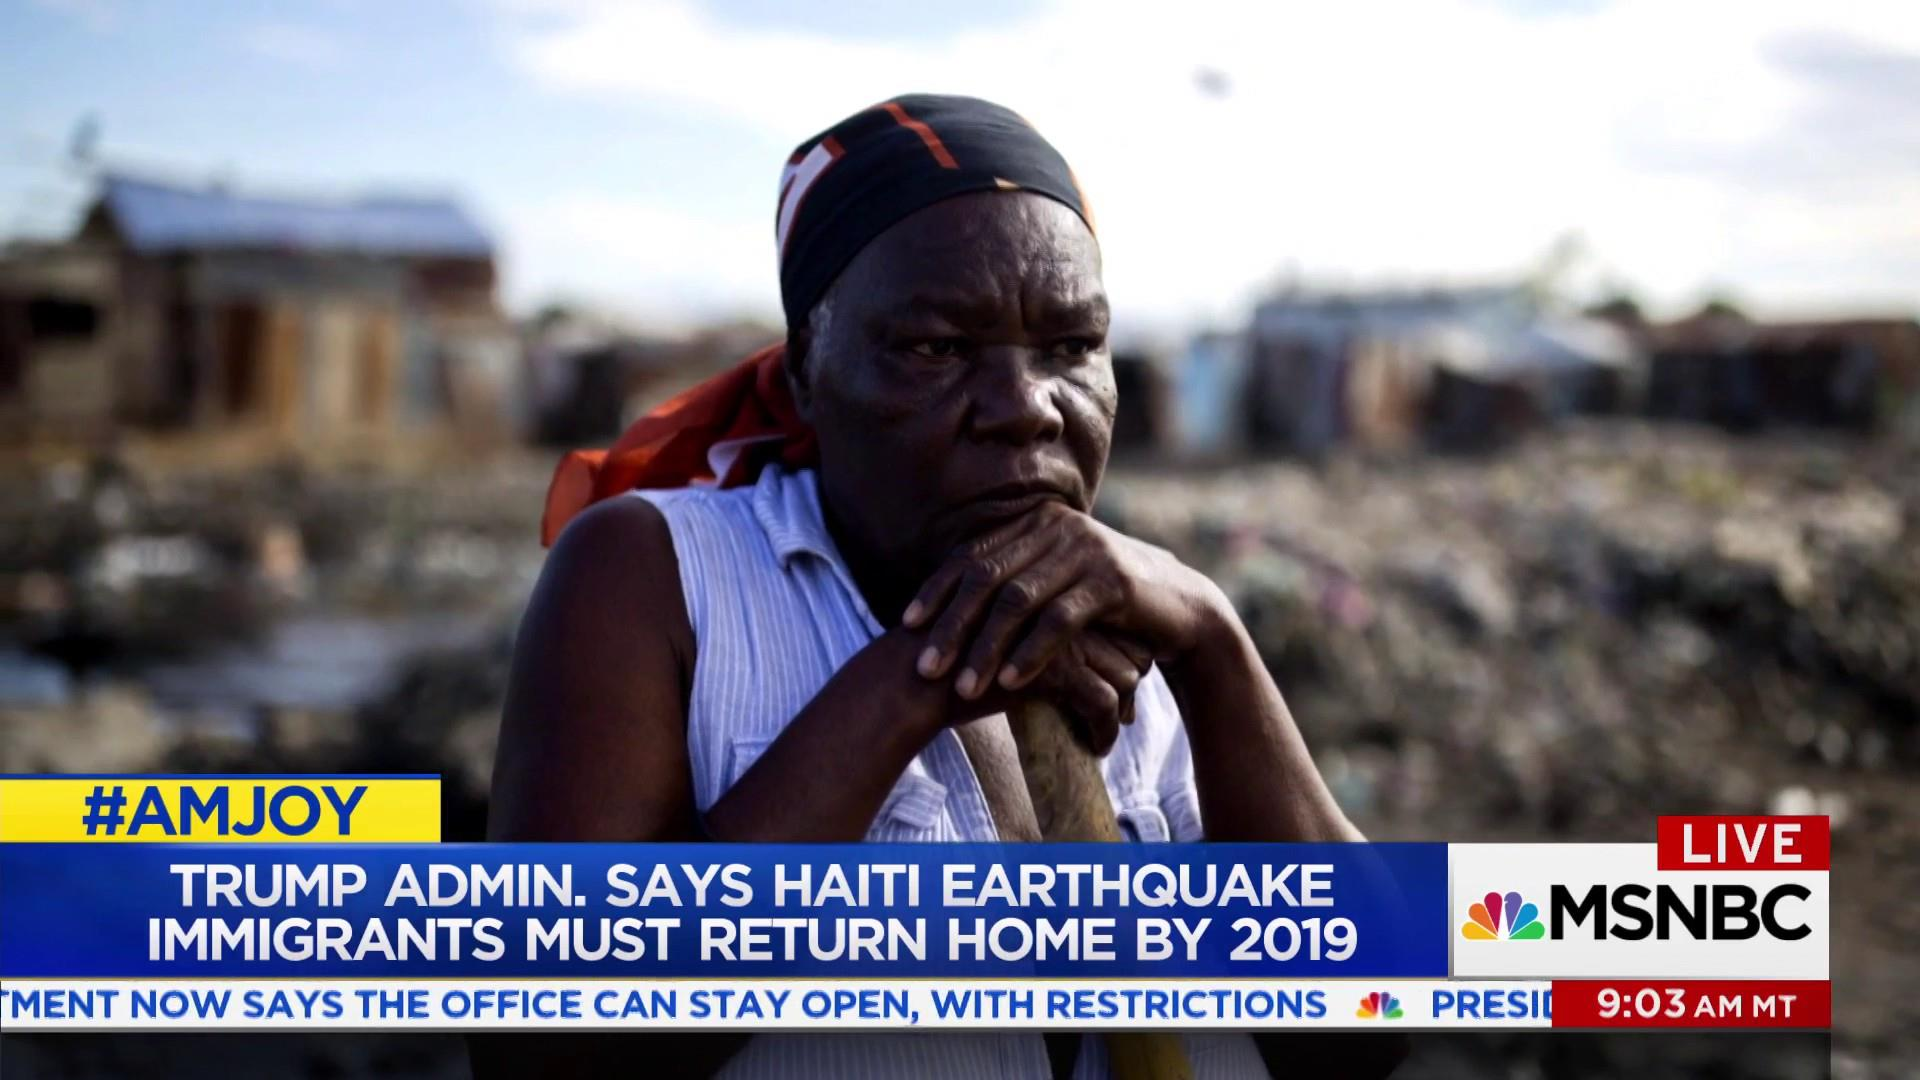 Haitian refugees to be expelled from U.S. ...